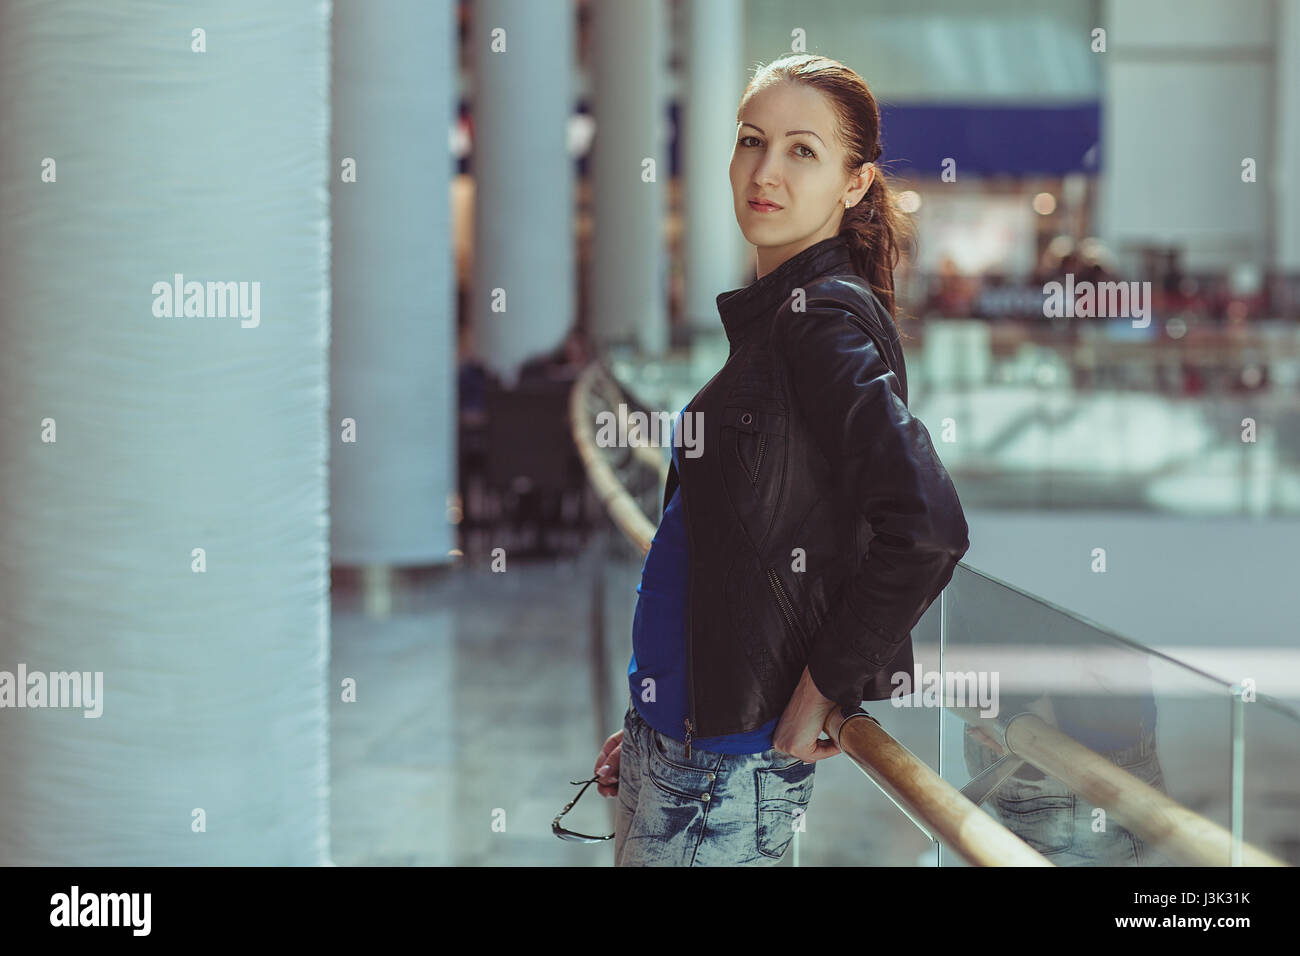 Beautiful girl with glasses daydreaming in a large store. - Stock Image